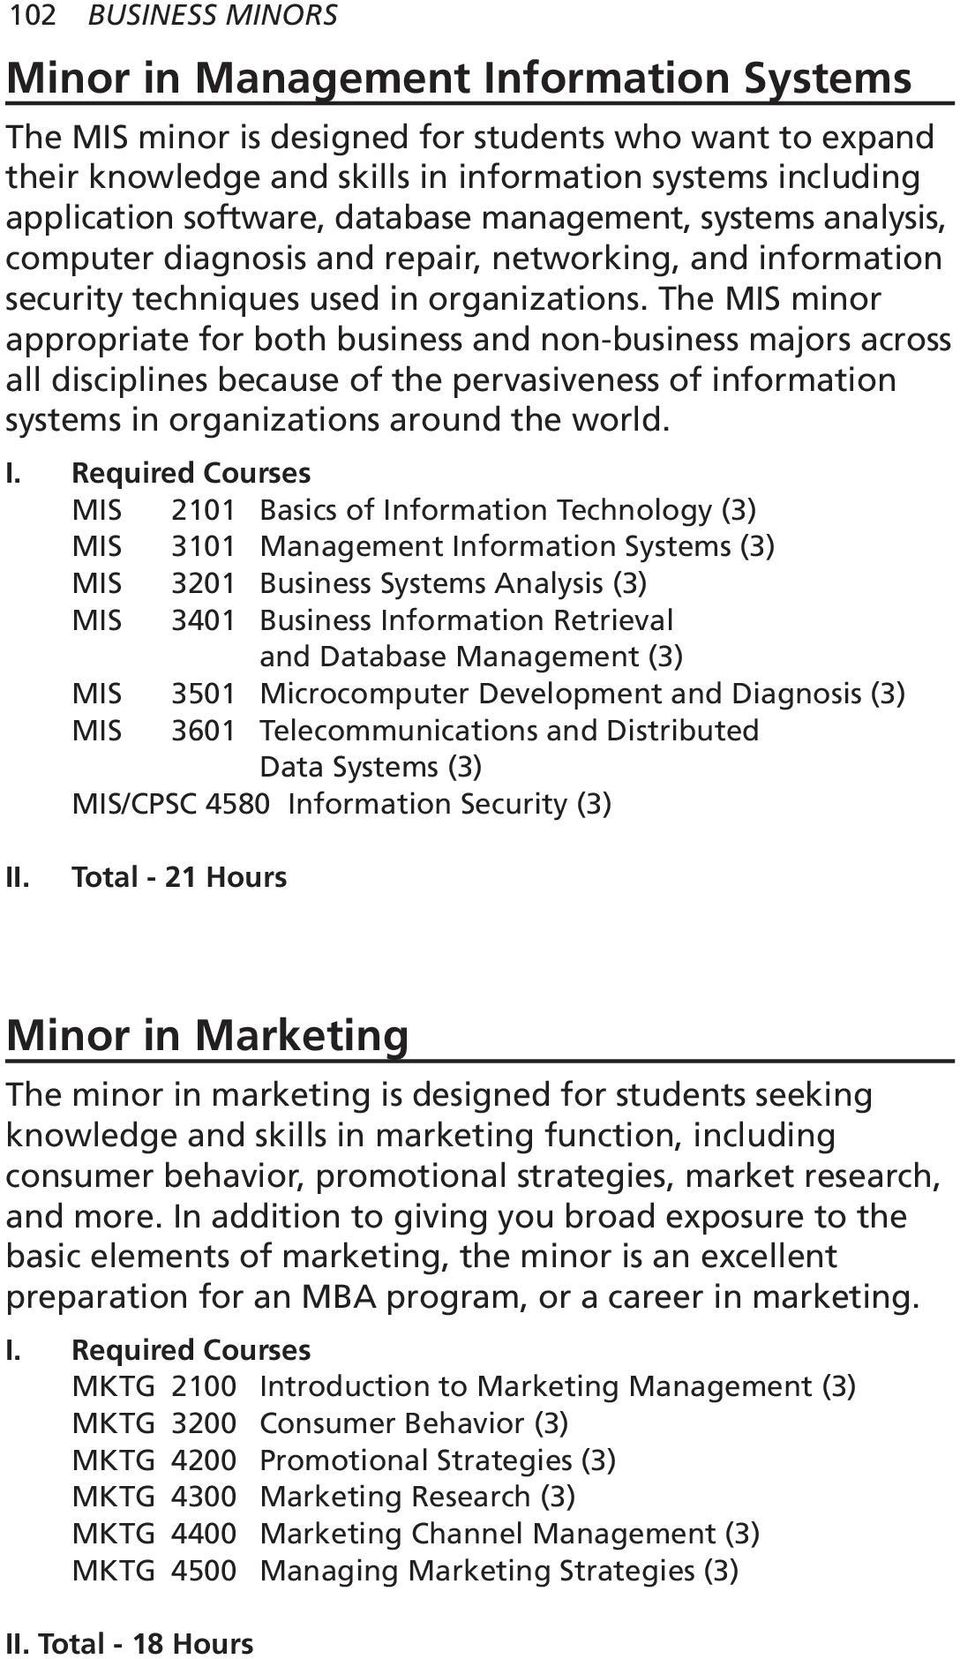 The MIS minor appropriate for both business and non-business majors across all disciplines because of the pervasiveness of information systems in organizations around the world.